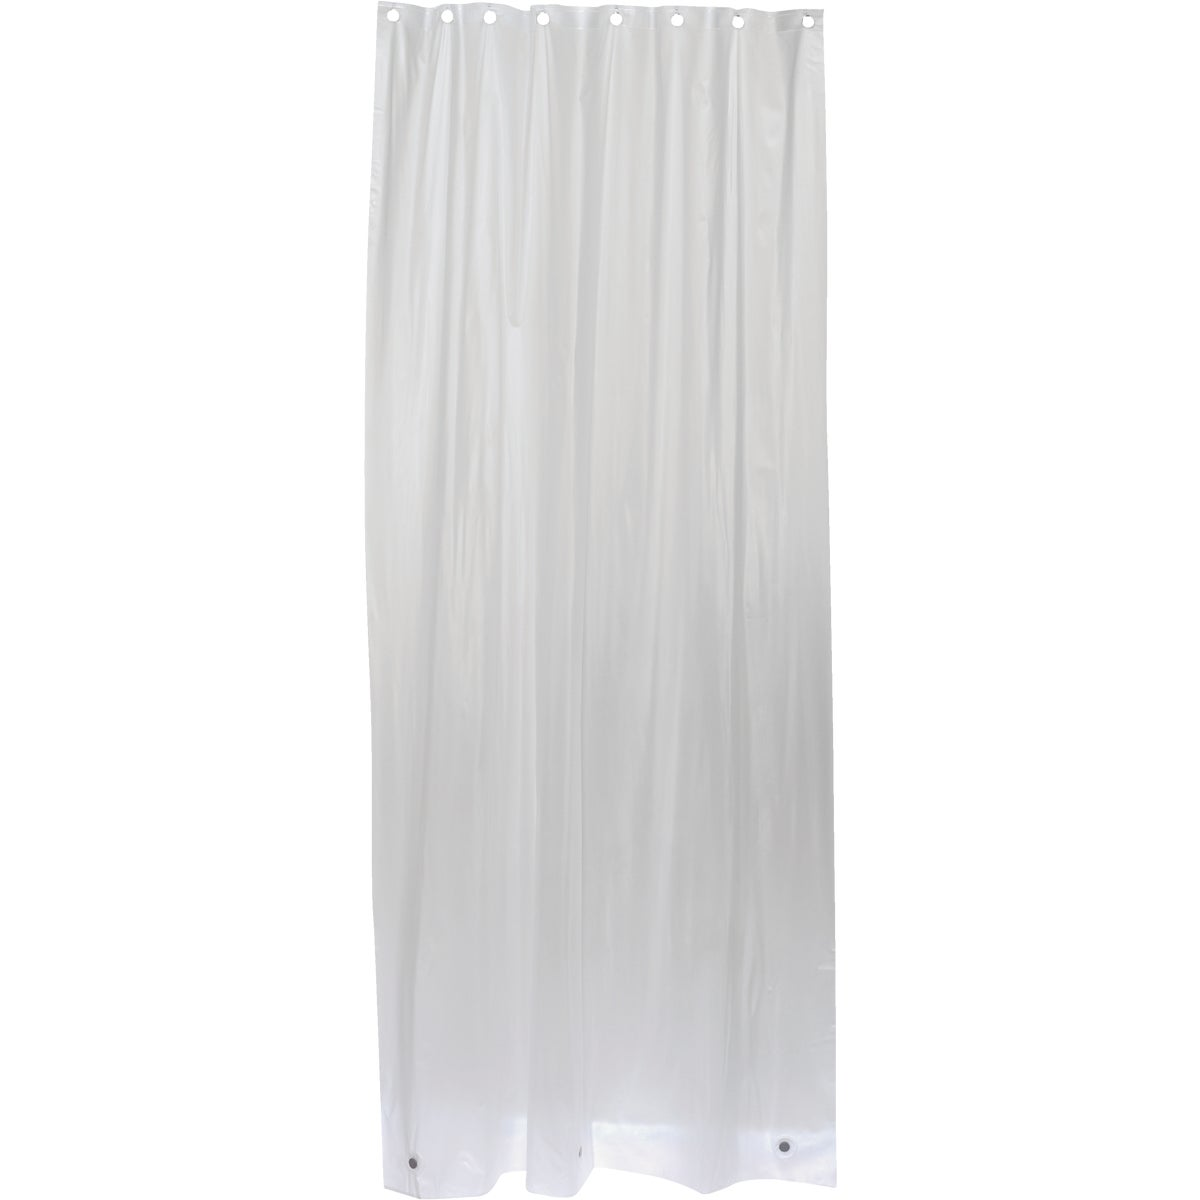 CLEAR SHOWER CURTAIN - H26KK by Zenith Prod Corp